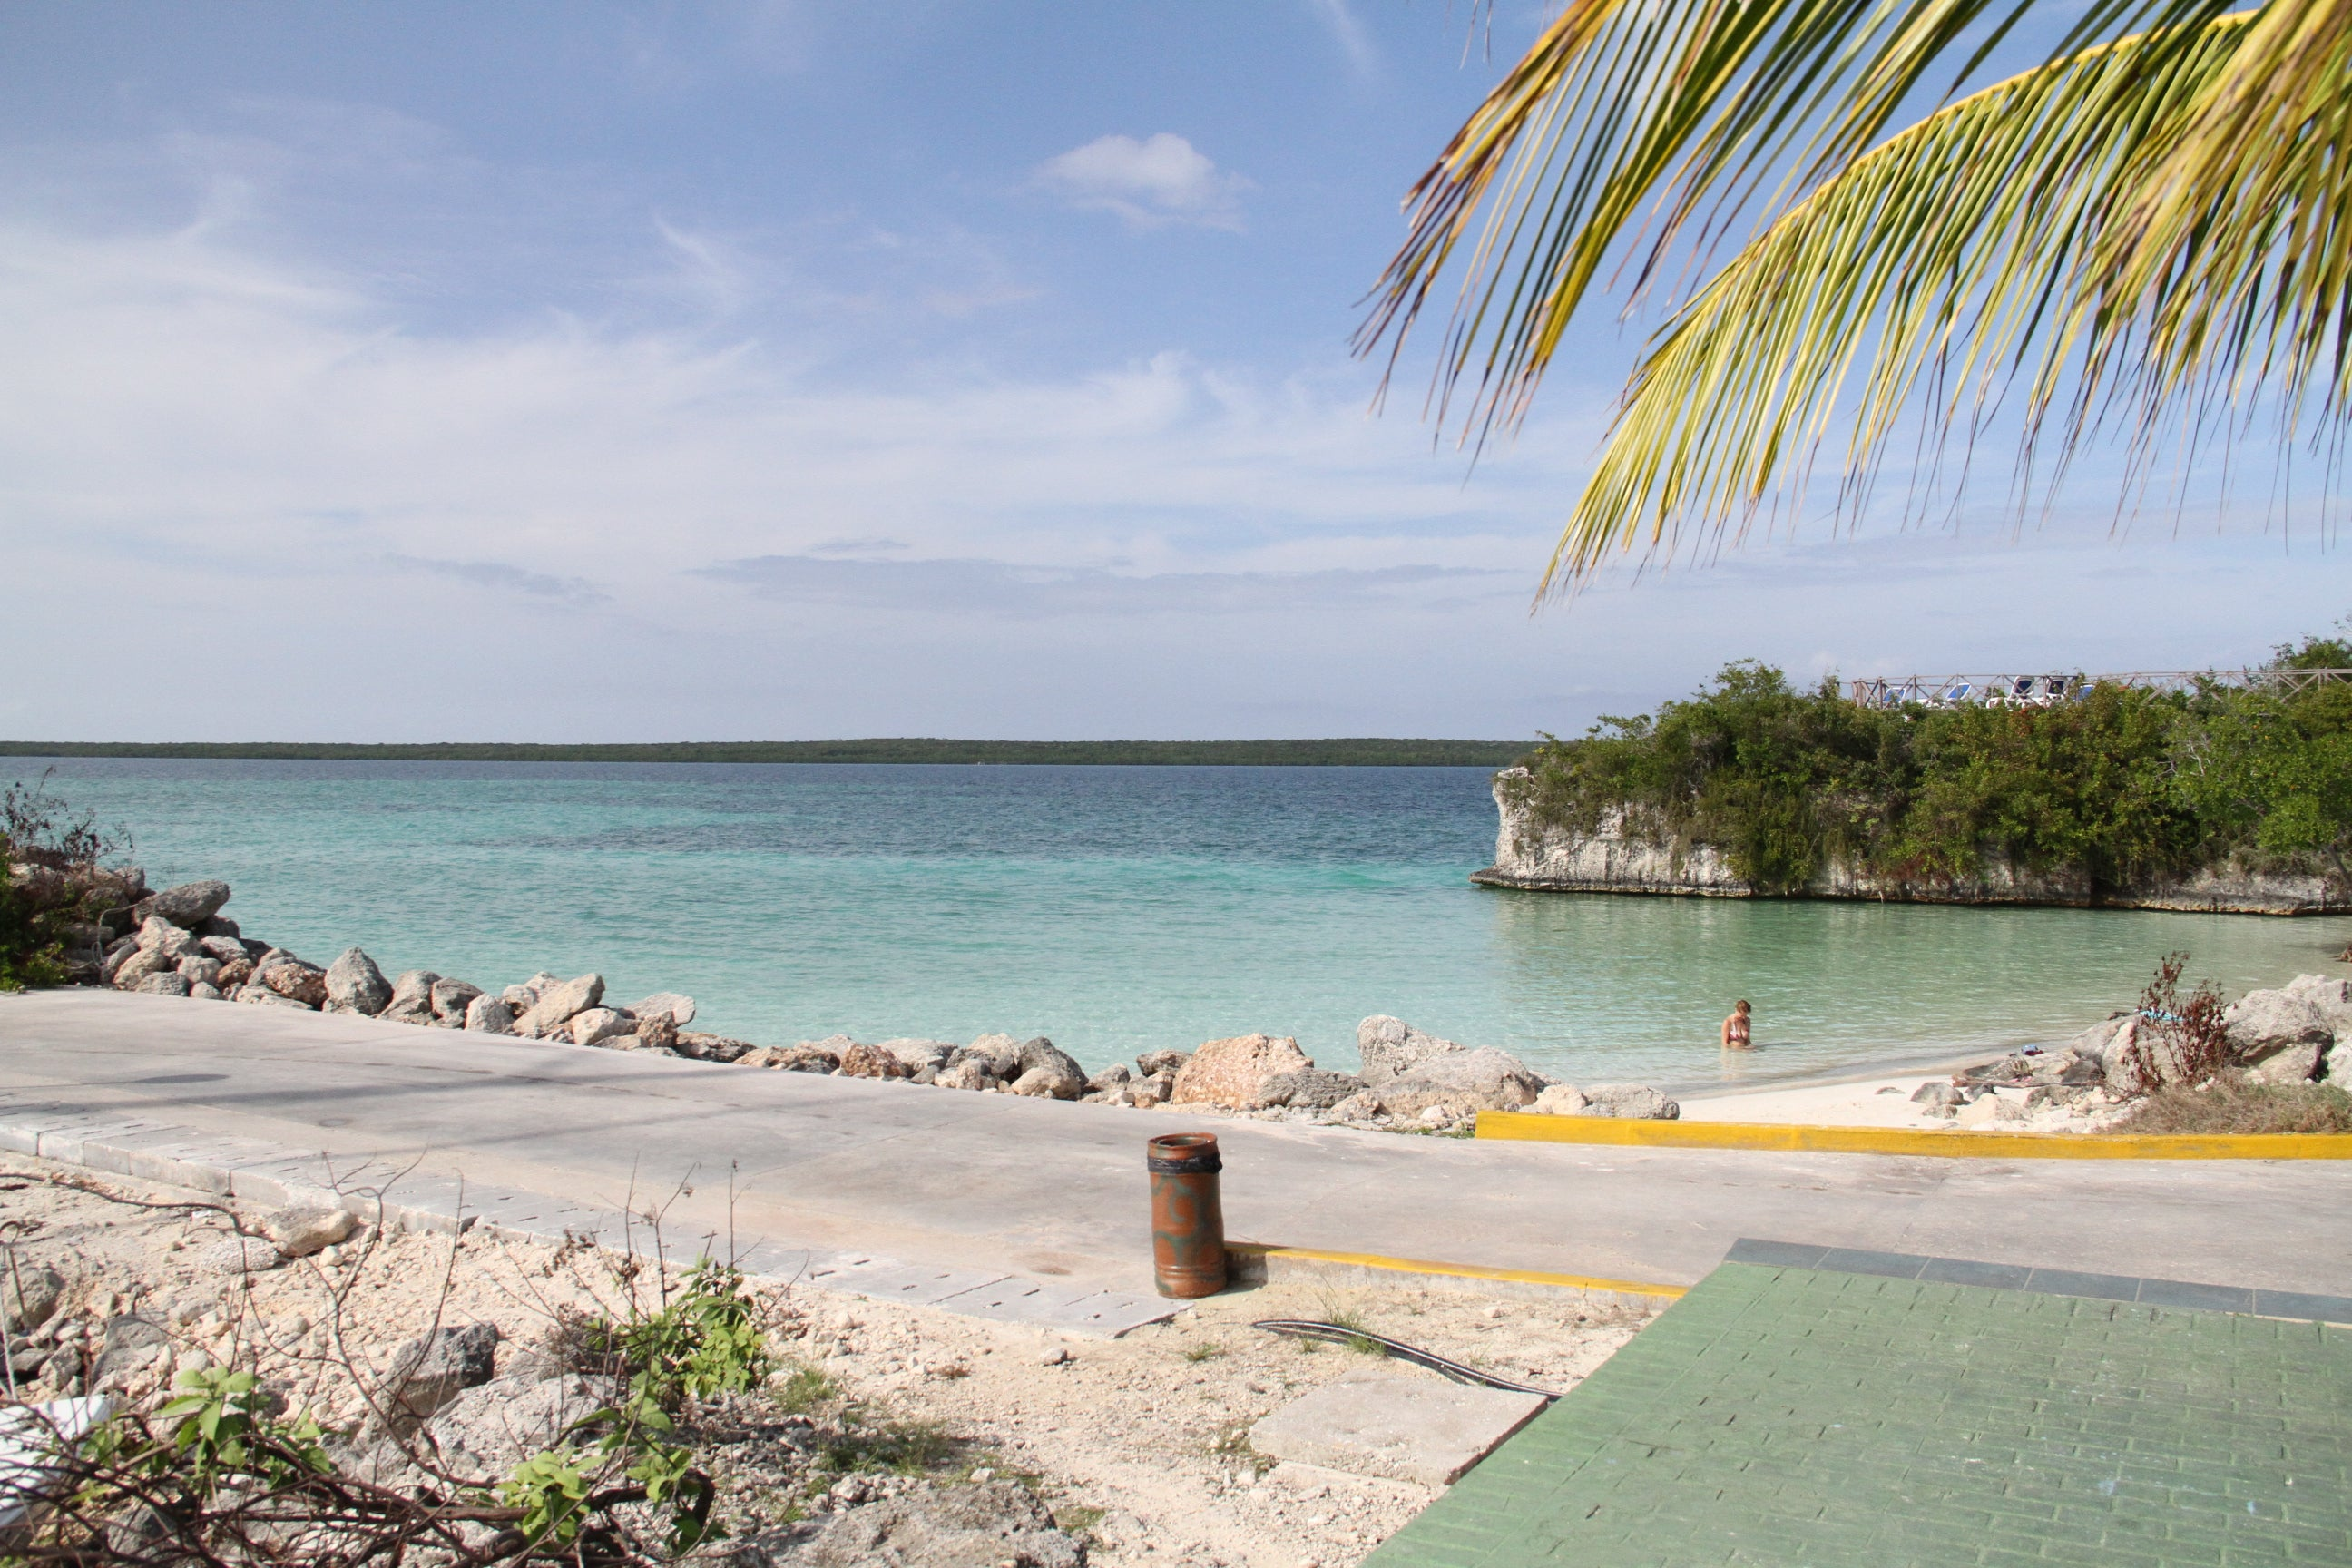 So If You Are Up For An Adventure Of Authentic Cuba Chillaxing In The Most Beautiful Beaches This Remedios Cayo Las Brujas Itinerary Is A Great Option